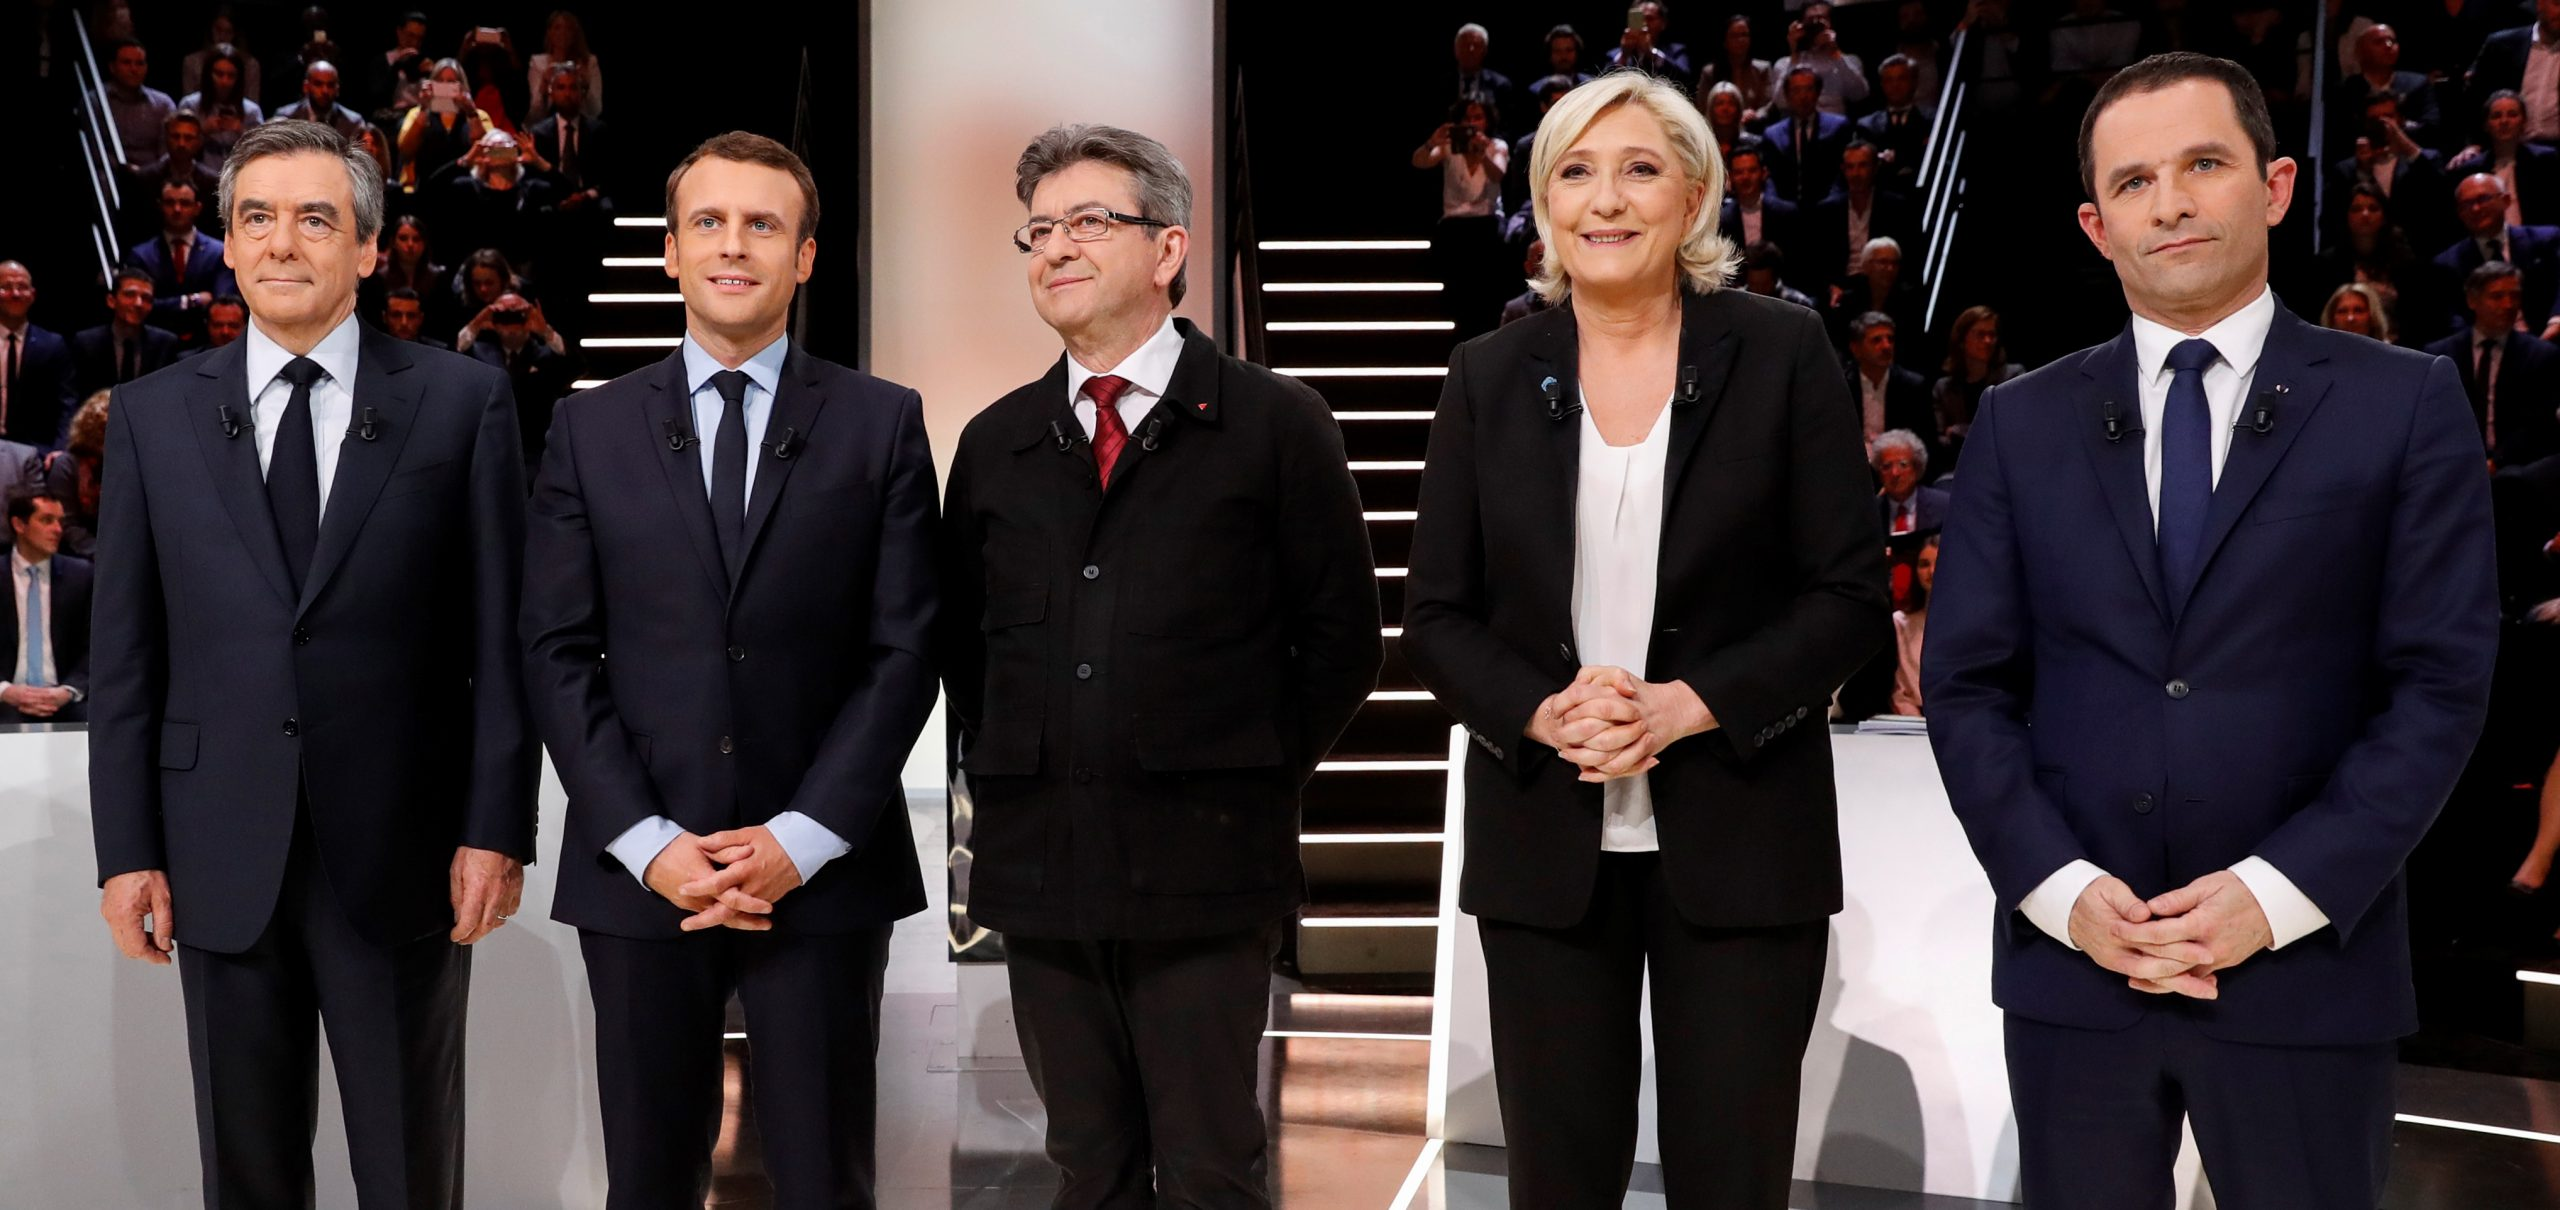 (LtoR) French presidential election candidates, right-wing Les Republicains (LR) party Francois Fillon, En Marche ! movement Emmanuel Macron, far-left coalition La France insoumise Jean-Luc Melenchon, far-right Front National (FN) party Marine Le Pen, and left-wing French Socialist (PS) party Benoit Hamon, pose before a debate on March 20, 2017. (PATRICK KOVARIK/AFP/Getty Images)